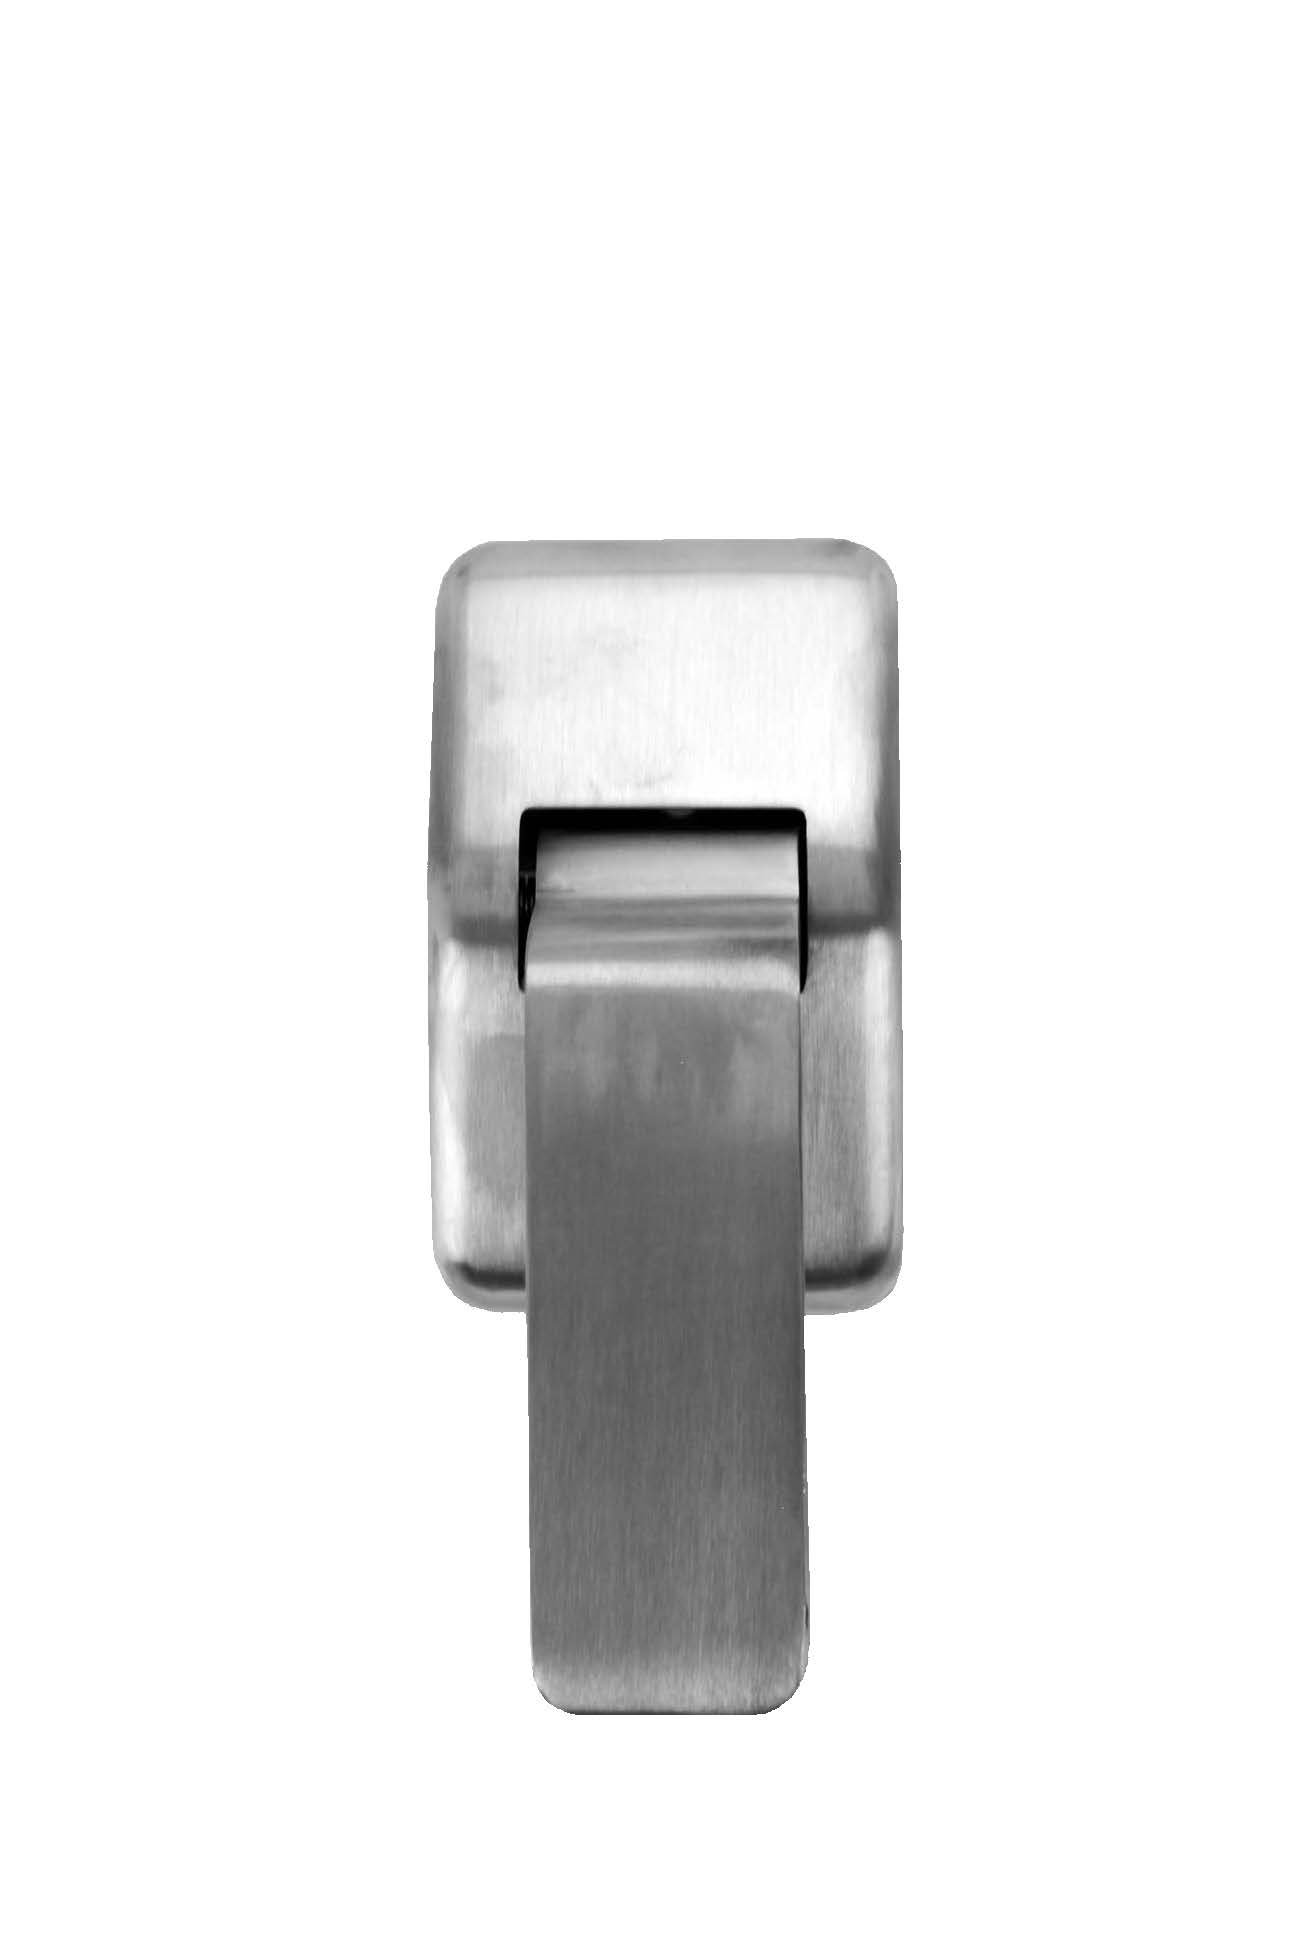 Don-Jo 4500 Brass Hospital Push-Pull Latch, Satin Stainless Steel Finish, 2-3/4'' Width x 4-1/2'' Height